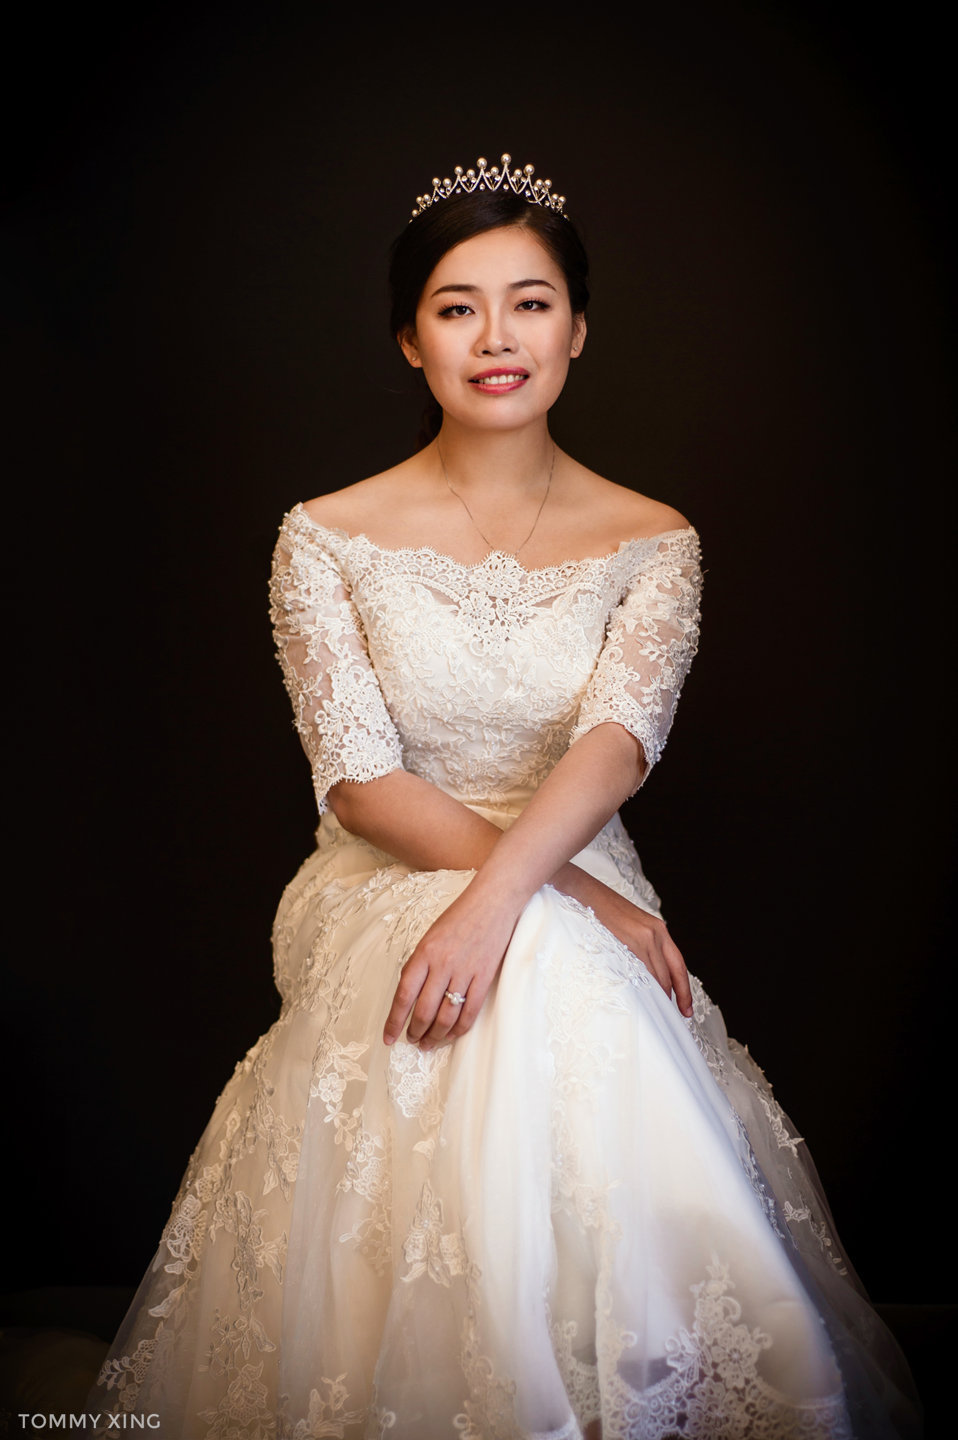 San Francisco Wedding Photo 旧金山湾区婚纱照 Tommy Xing Photography 洛杉矶 04.jpg